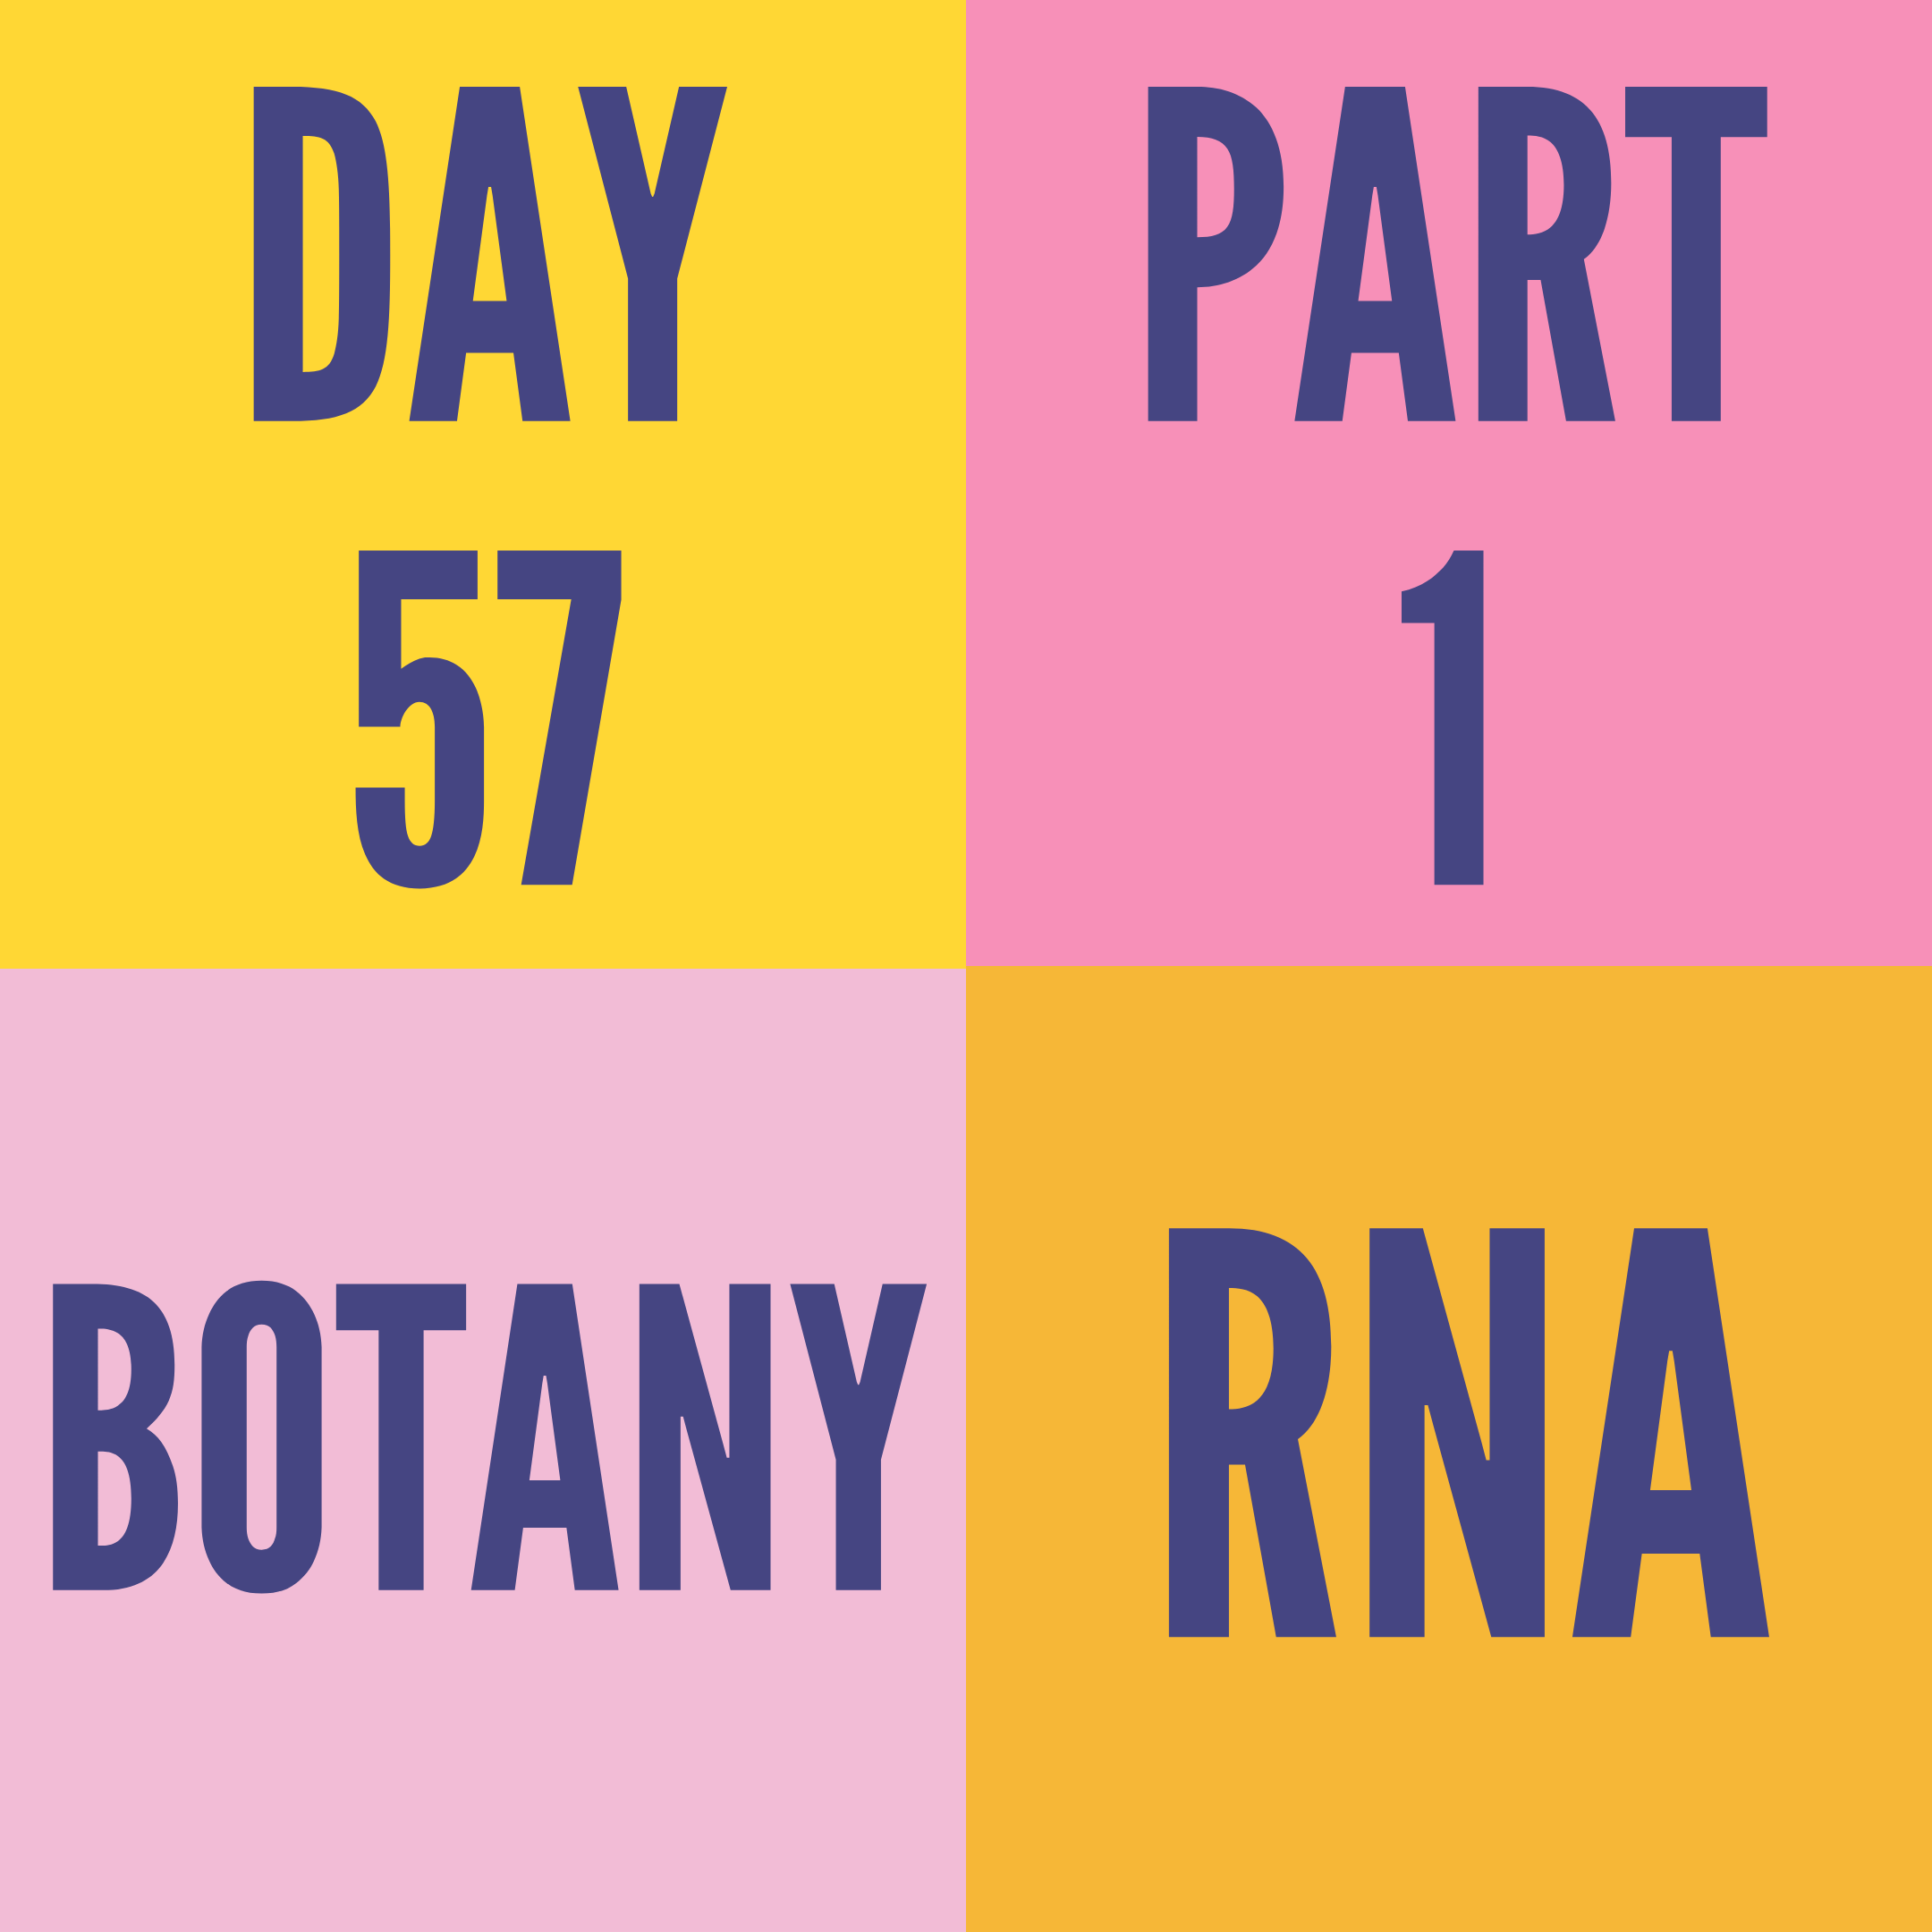 DAY-57 PART-1 RNA